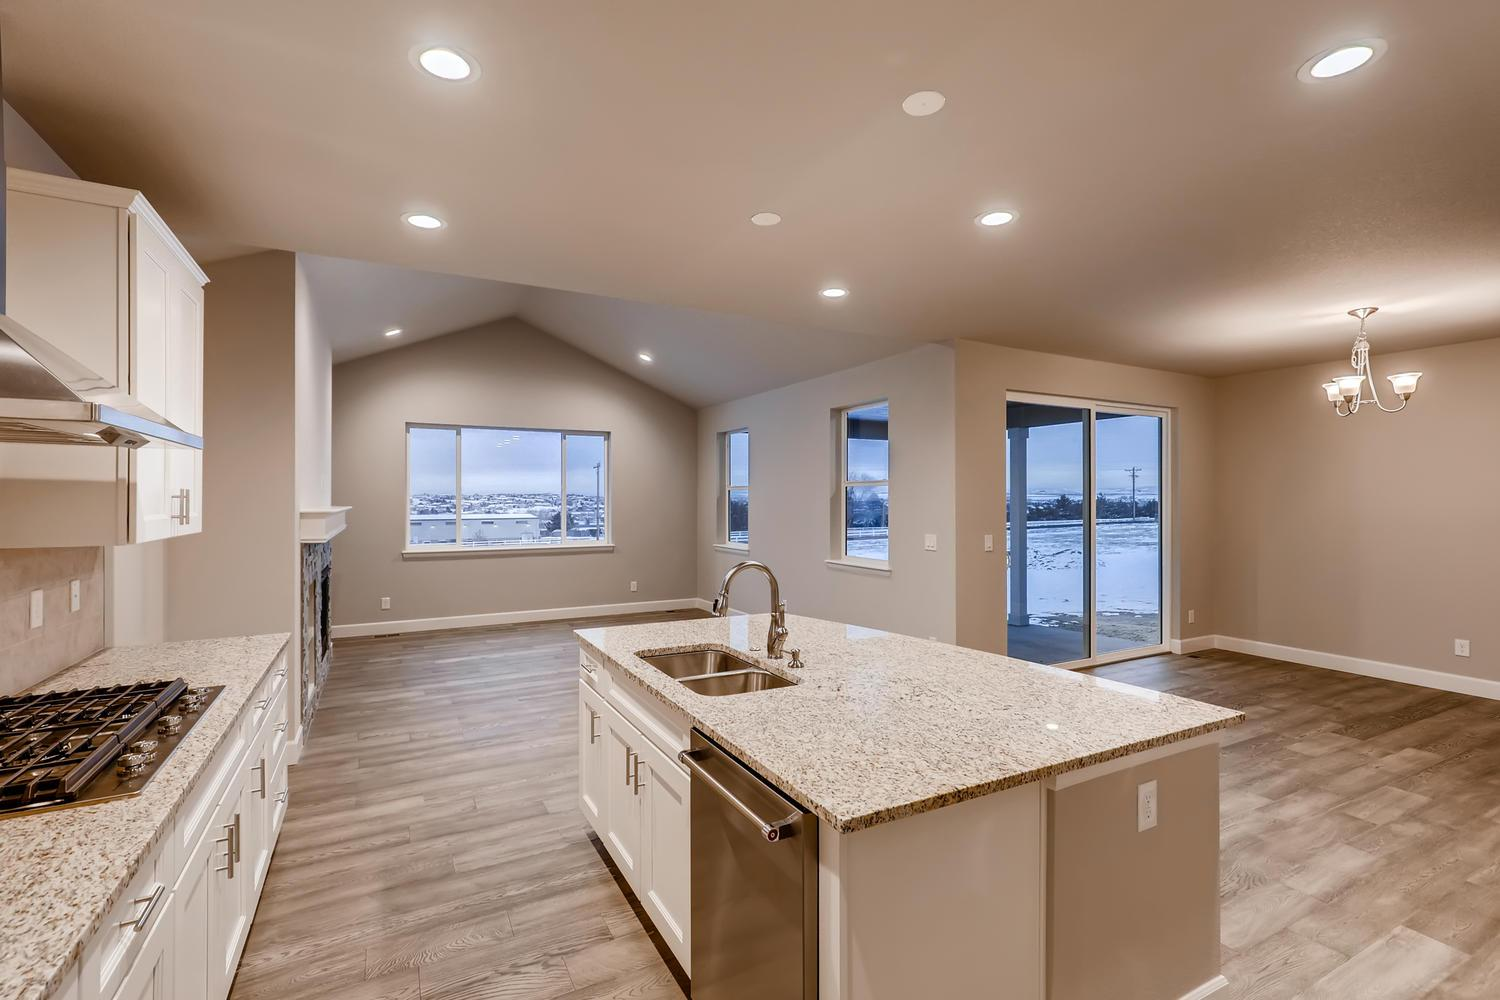 Kitchen featured in the Glendale II - Enclave at Prairie Star By RichfieldHomes